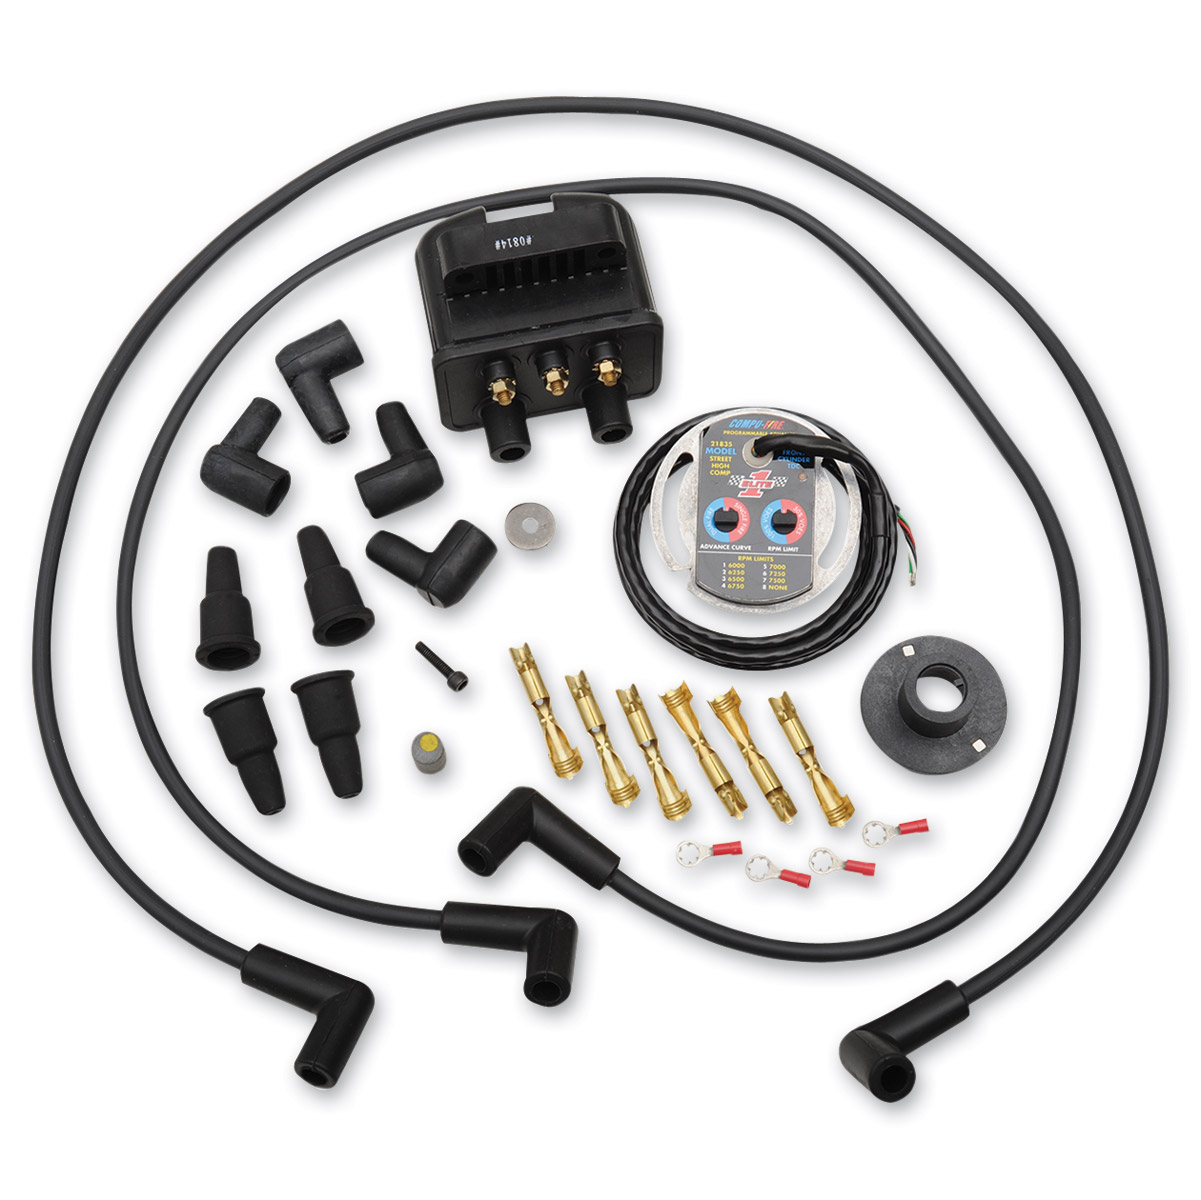 Compu-Fire Single-Fire Ignition System for Kick Start